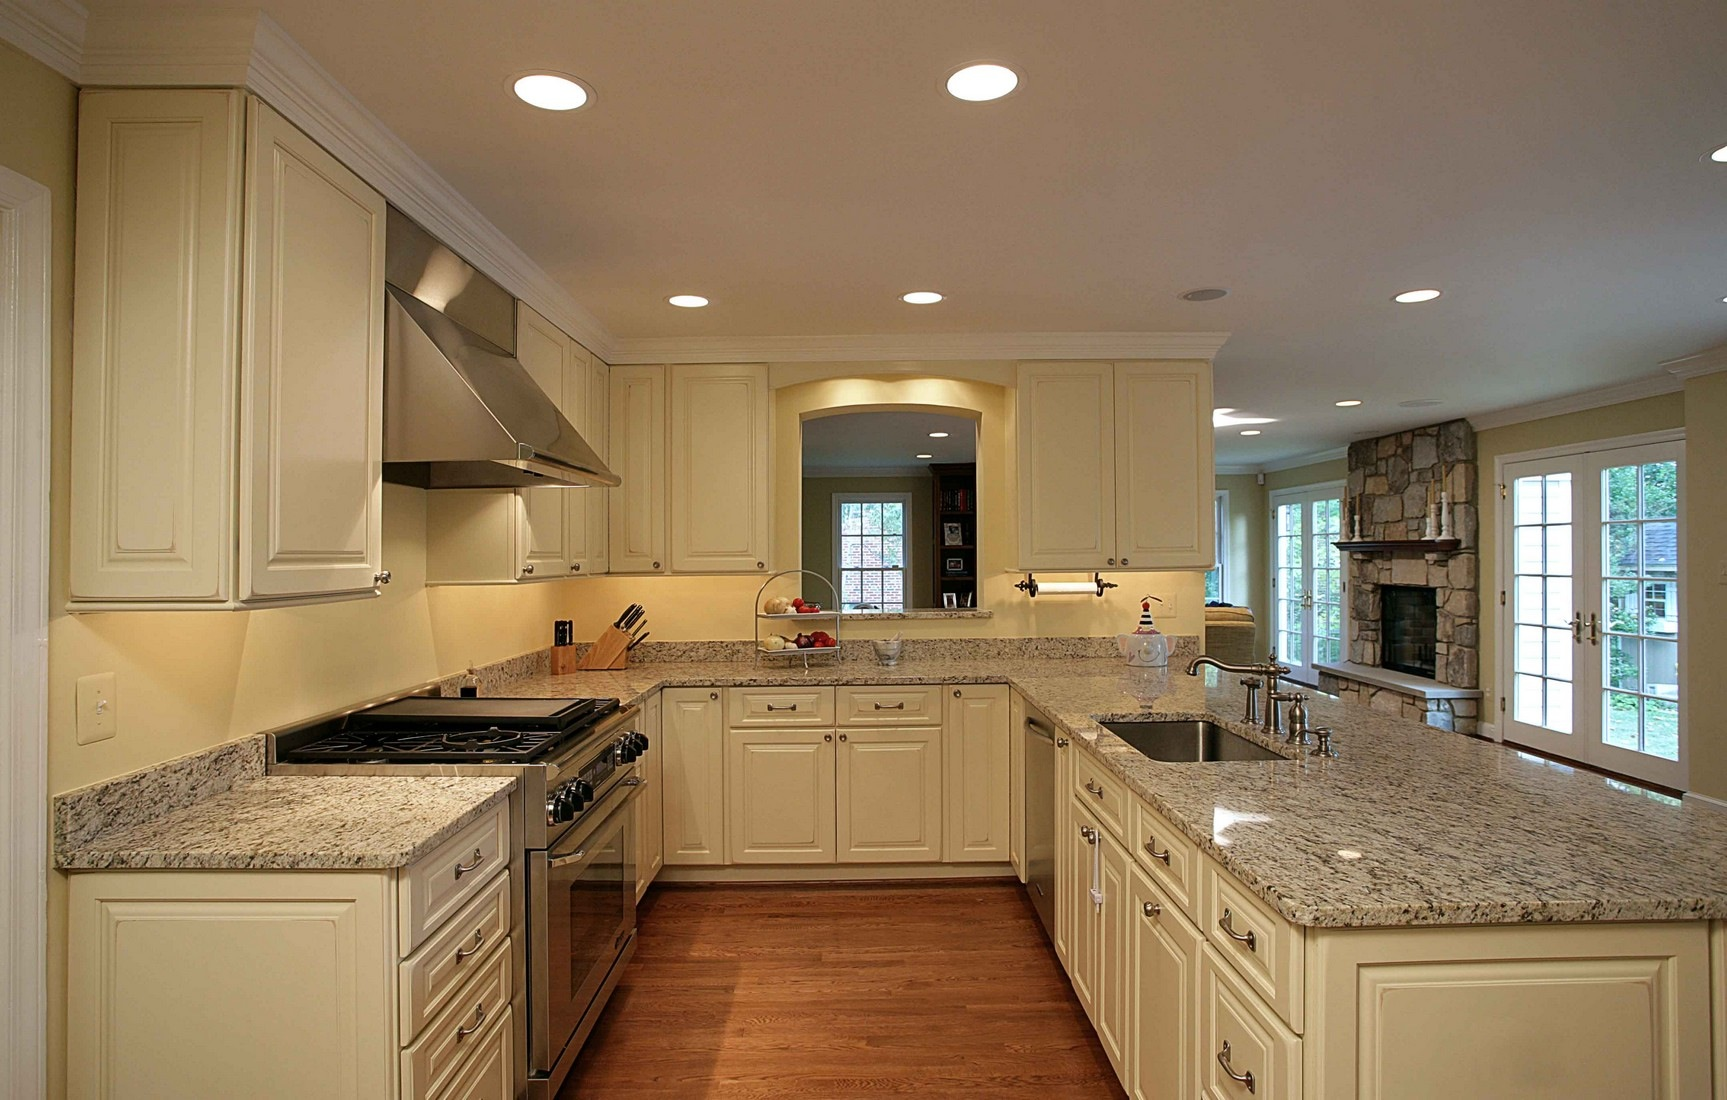 Kitchen Remodeling In Maryland Exterior Interior Inspiration Chevy Chase Maryland Home Remodeling Decorating Inspiration